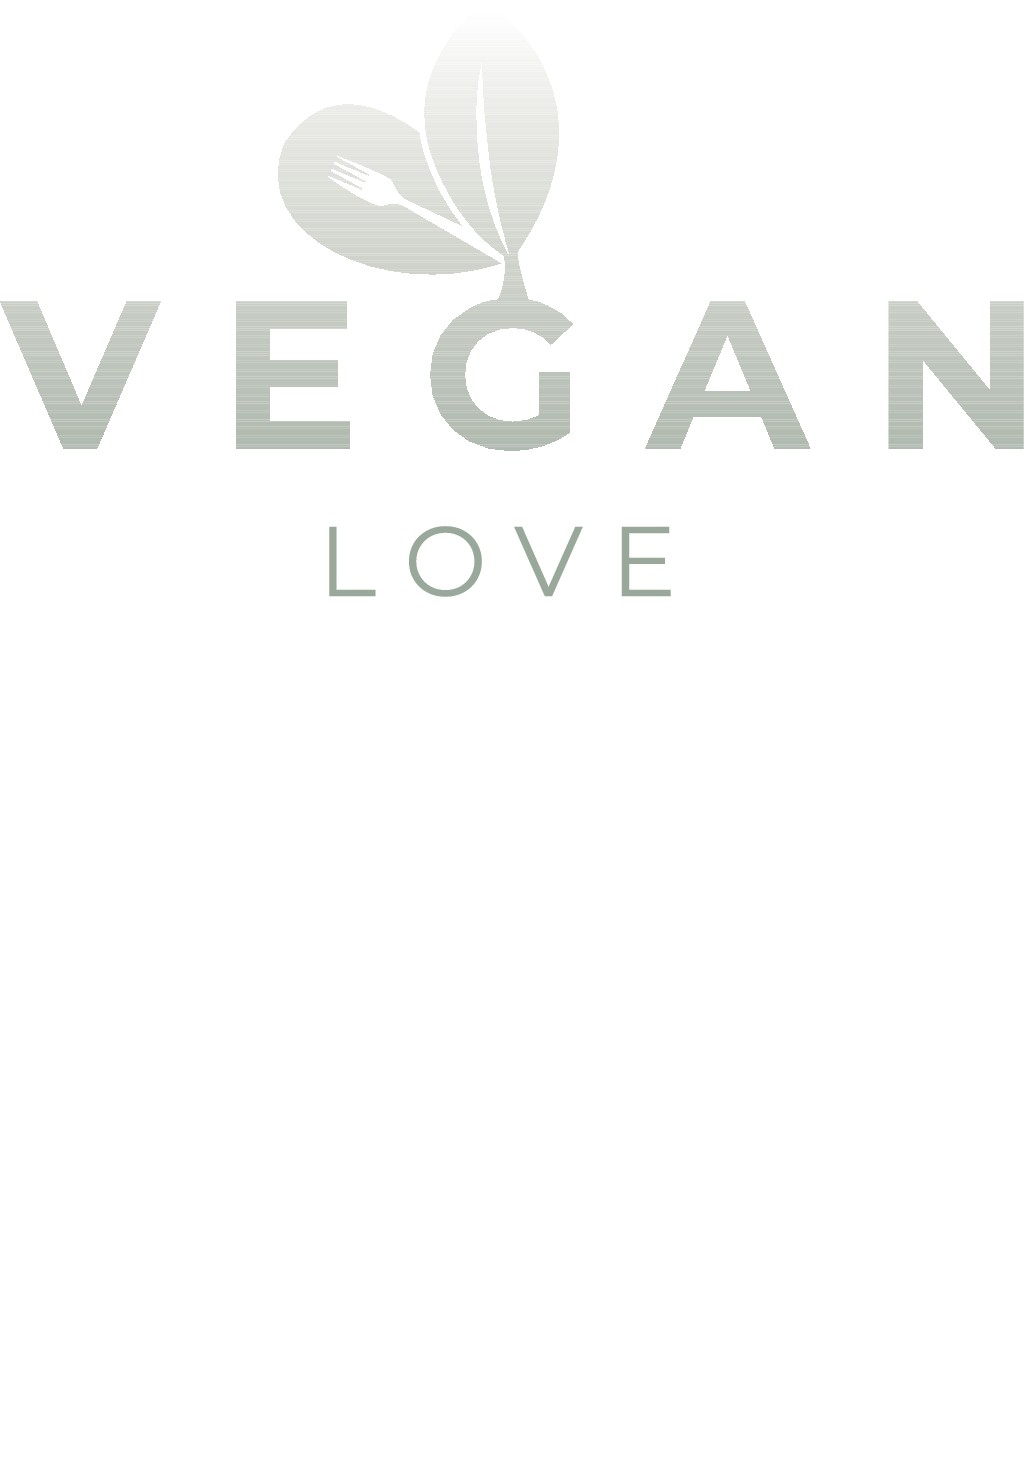 Vegan t-shirt design